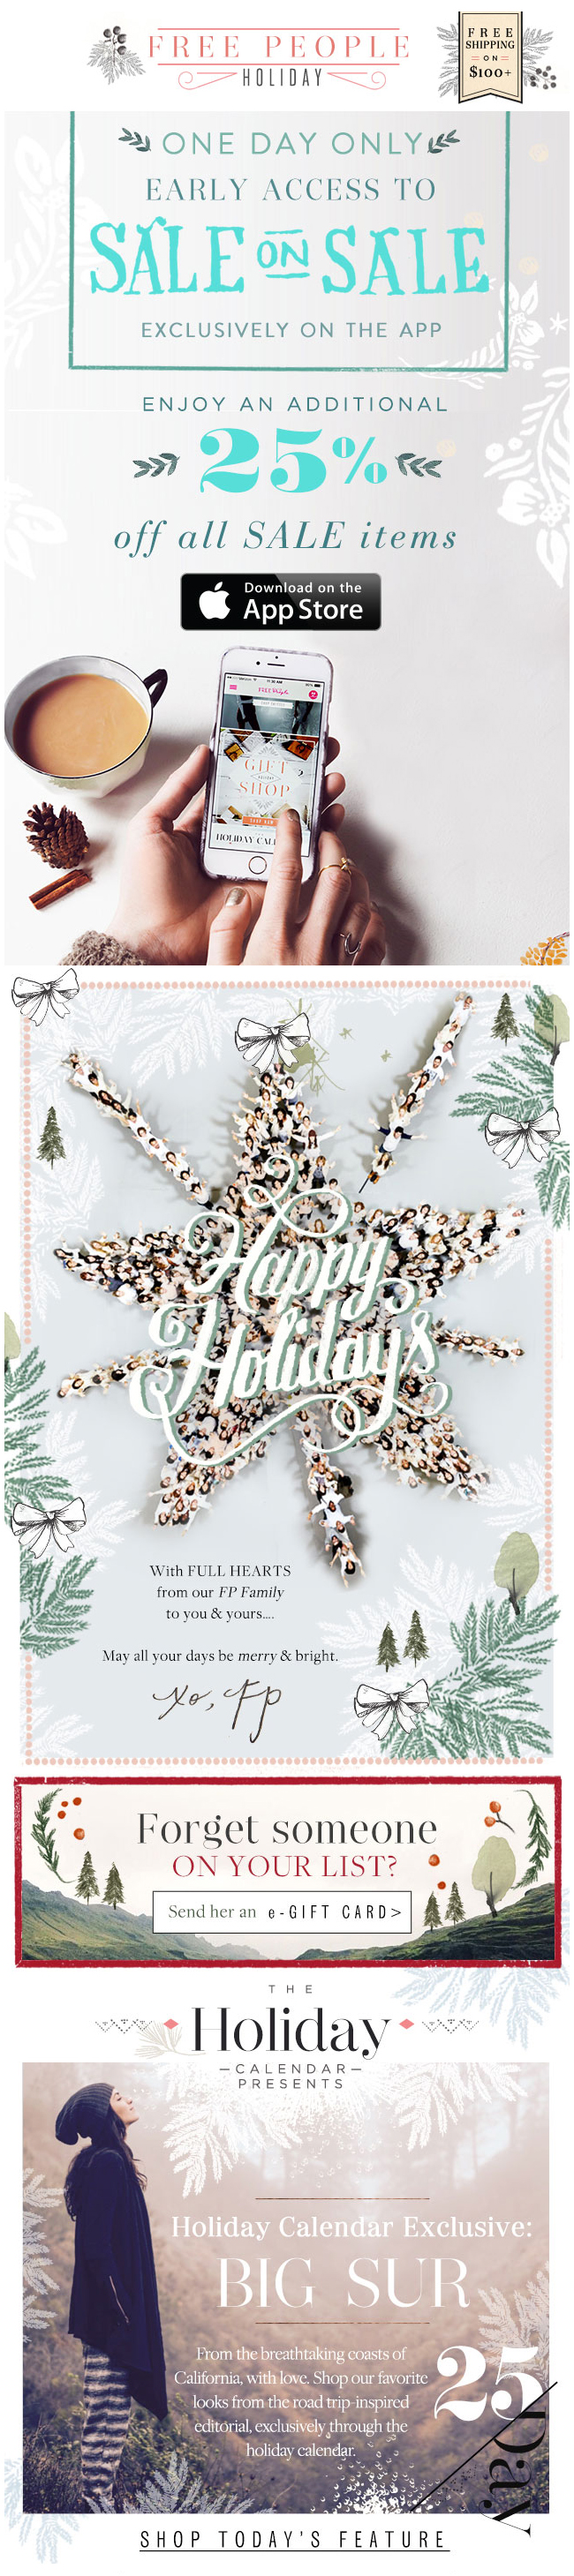 Free People  Holiday Letter  App  Email Design  Inspiration